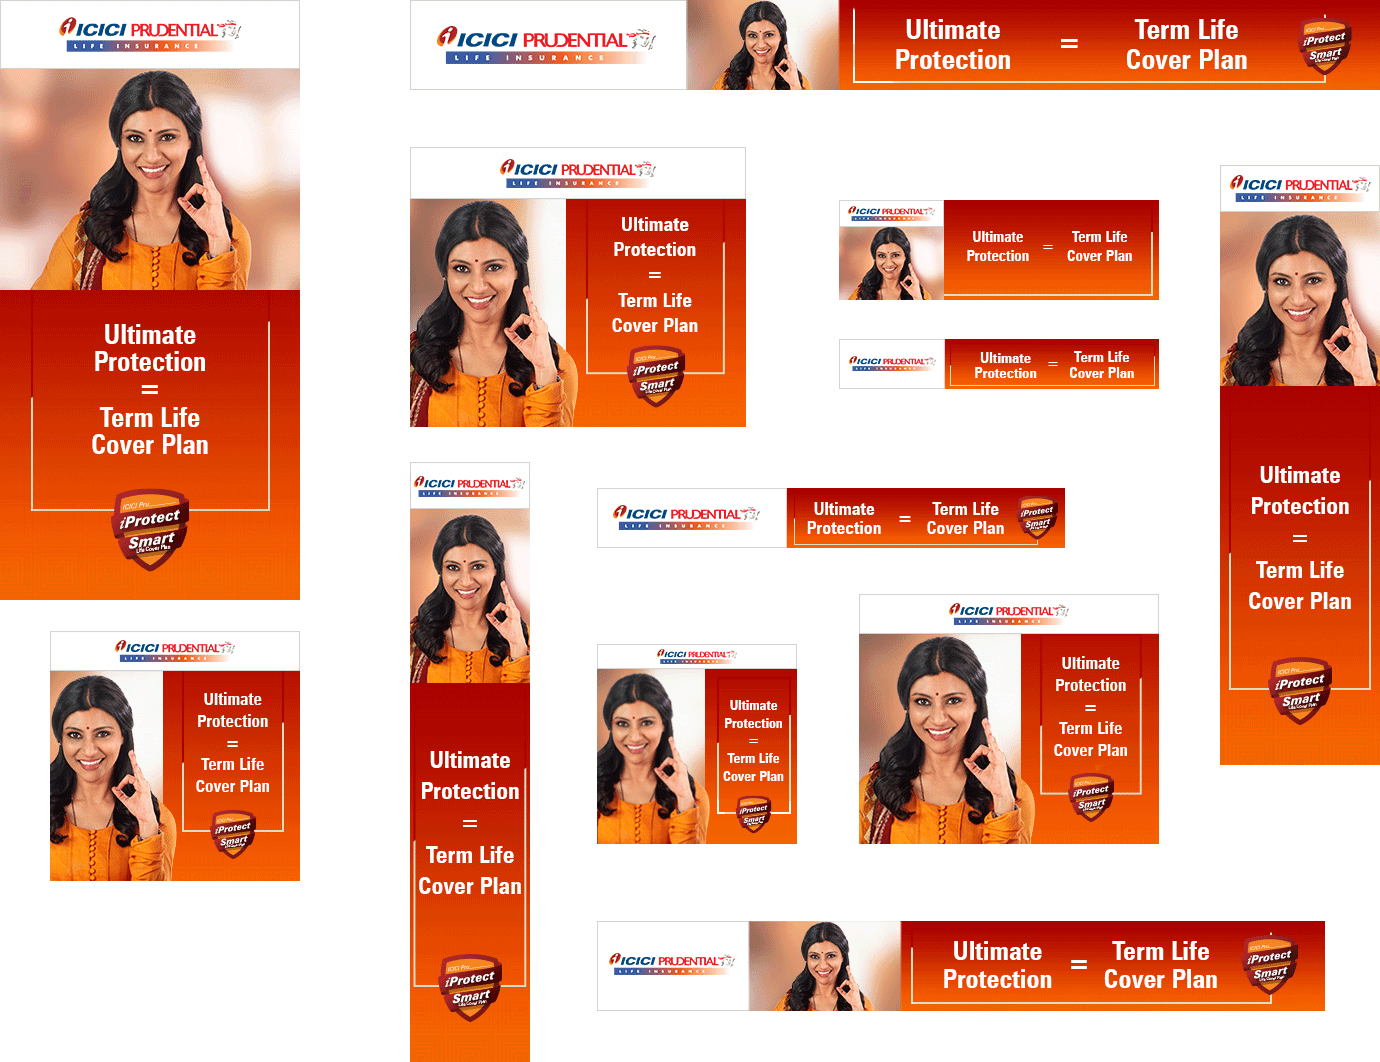 ICICI Pru iProtct Smart Campaign GDN Creatives Collage